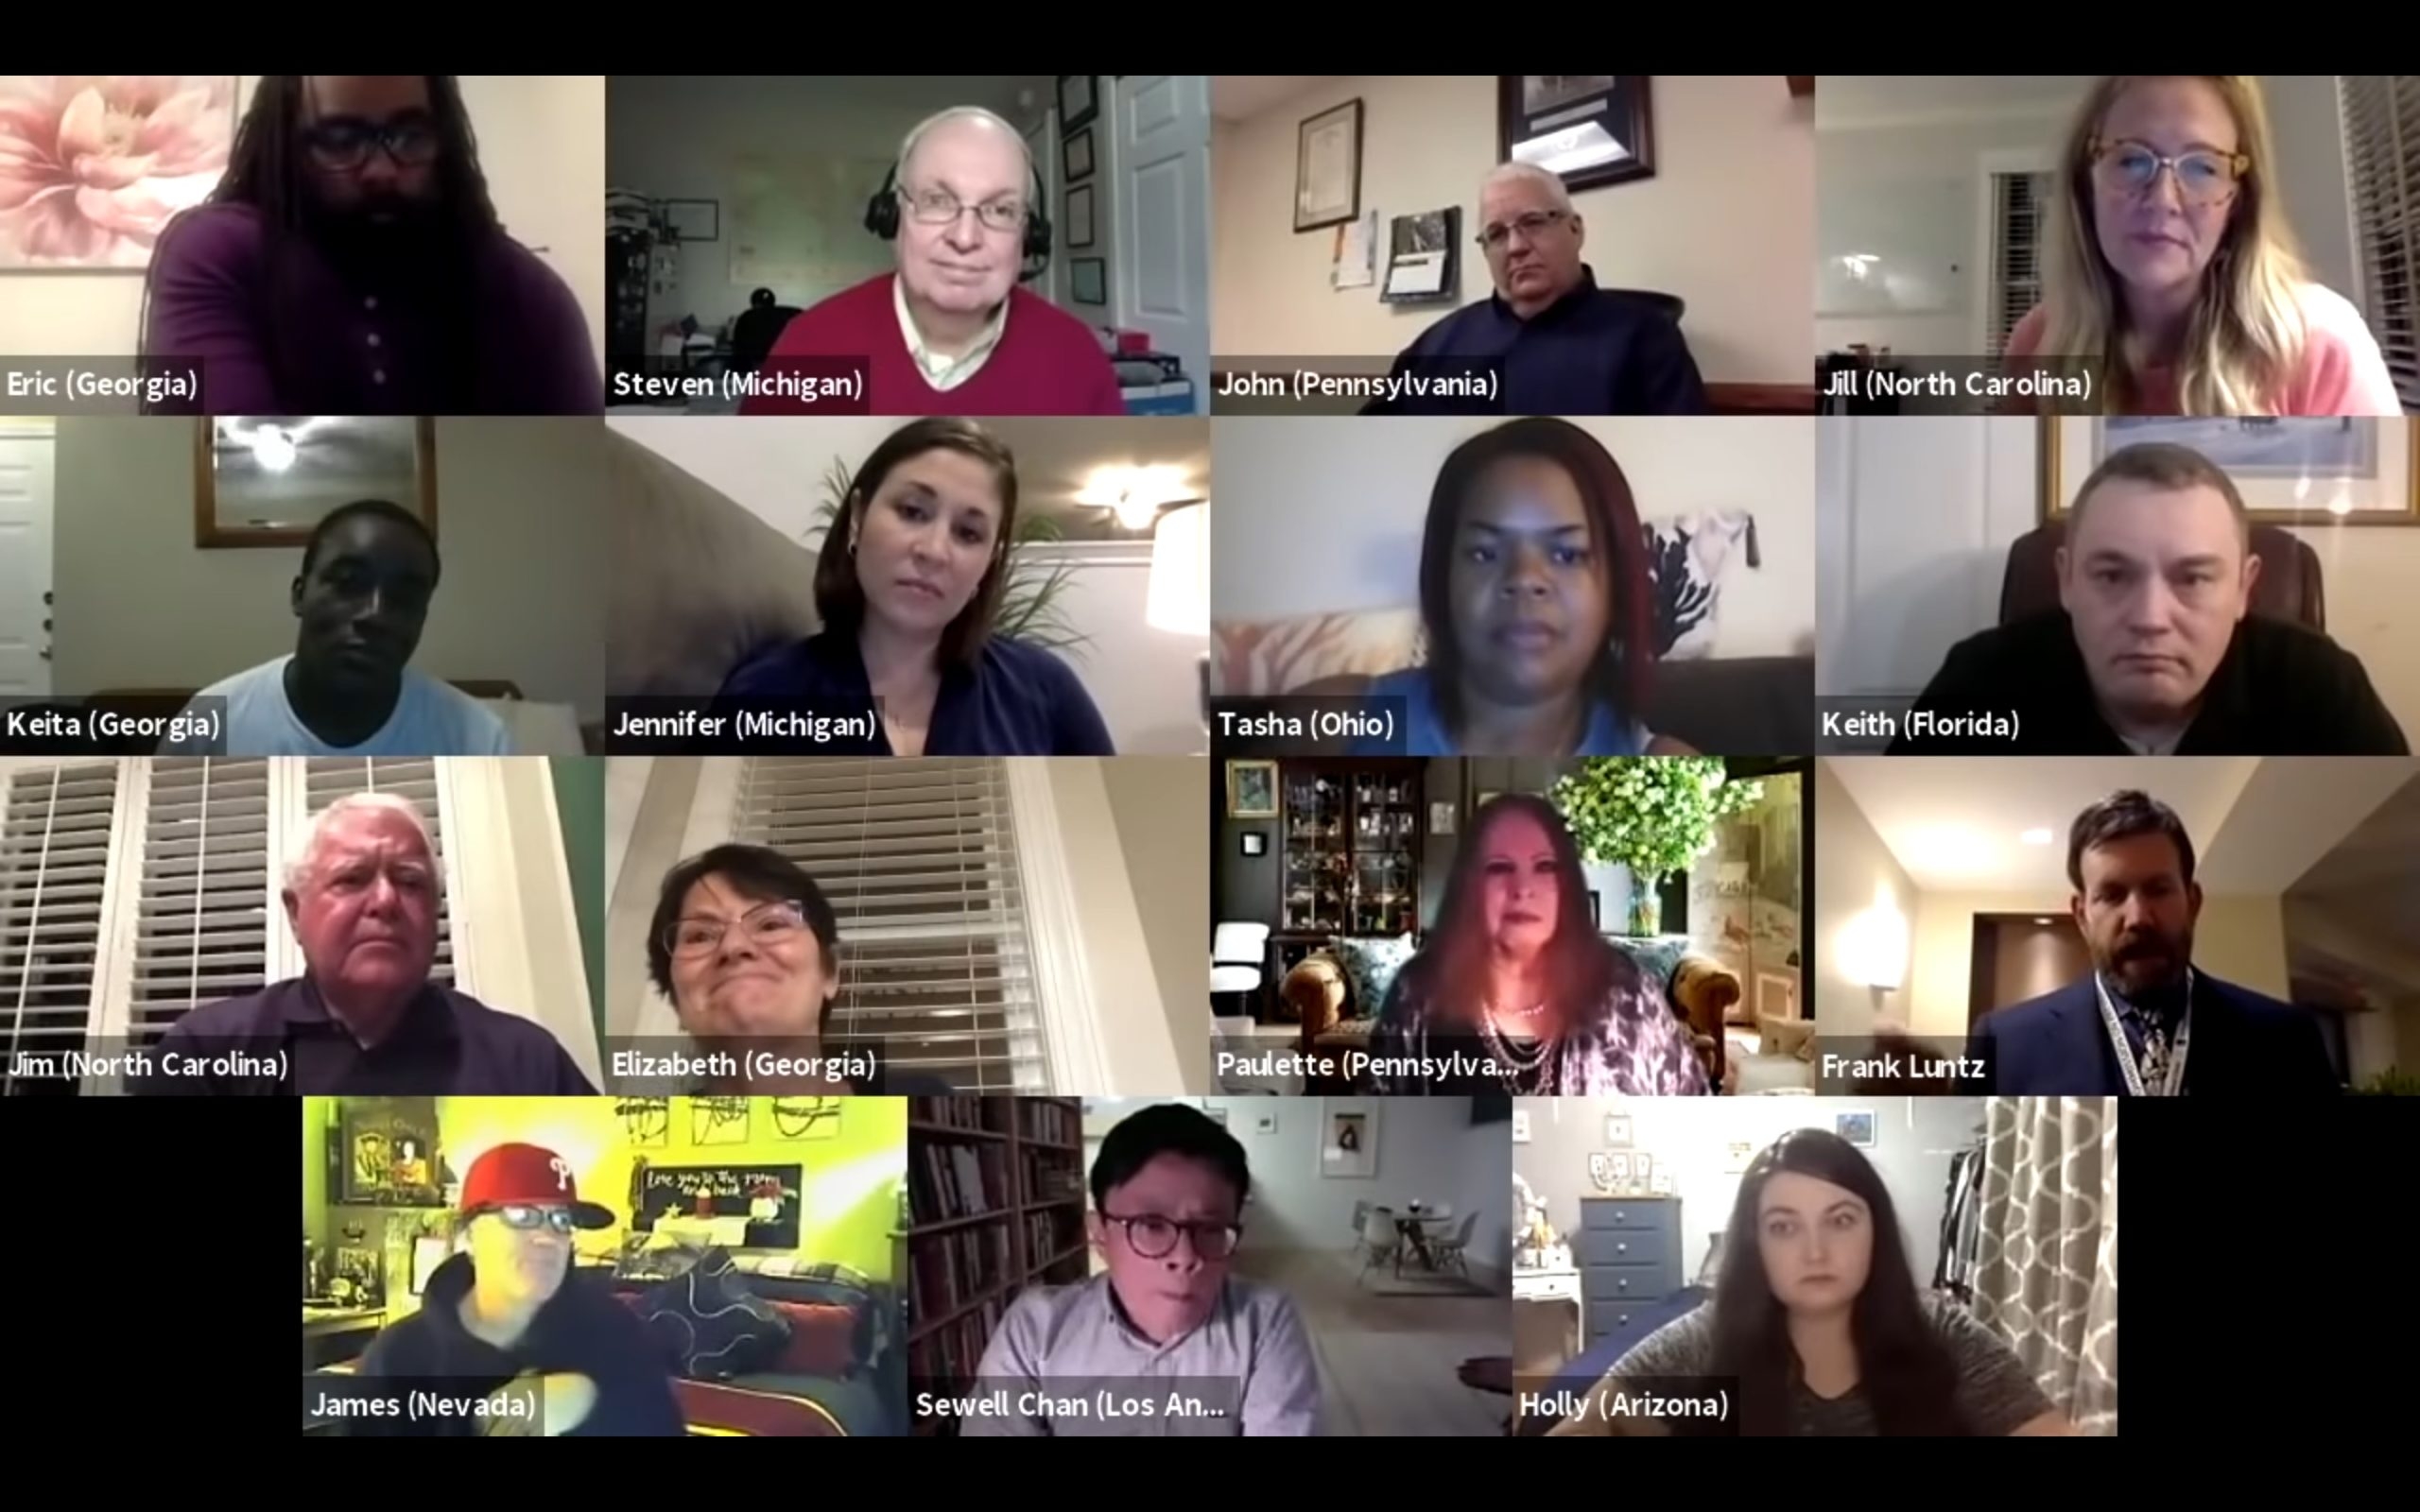 Frank Luntz hosts a virtual panel of undecided voters on Thursday following the final 2020 presidential debate between President Donald Trump and former Vice President Joe Biden. (Frank Luntz/Video screenshot/YouTube)